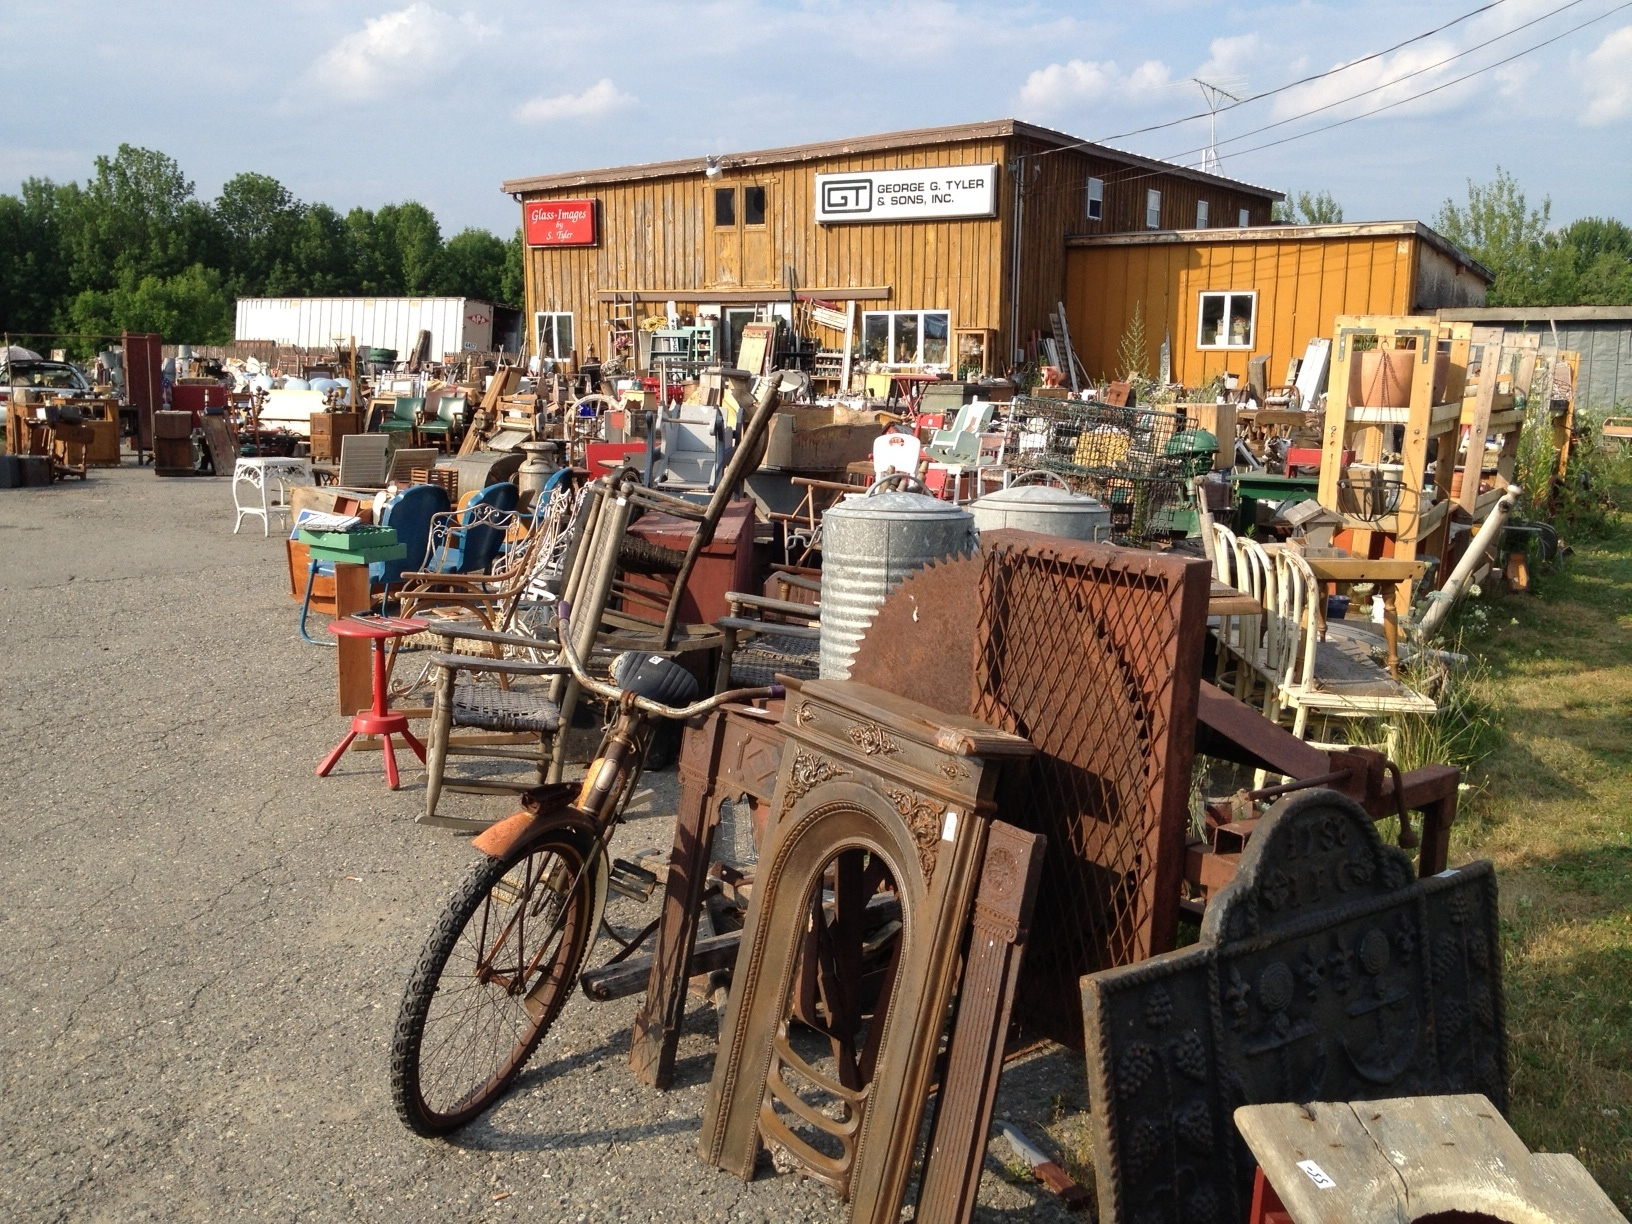 New To PA Looking For A BIG AntiqueOld Stuff Store